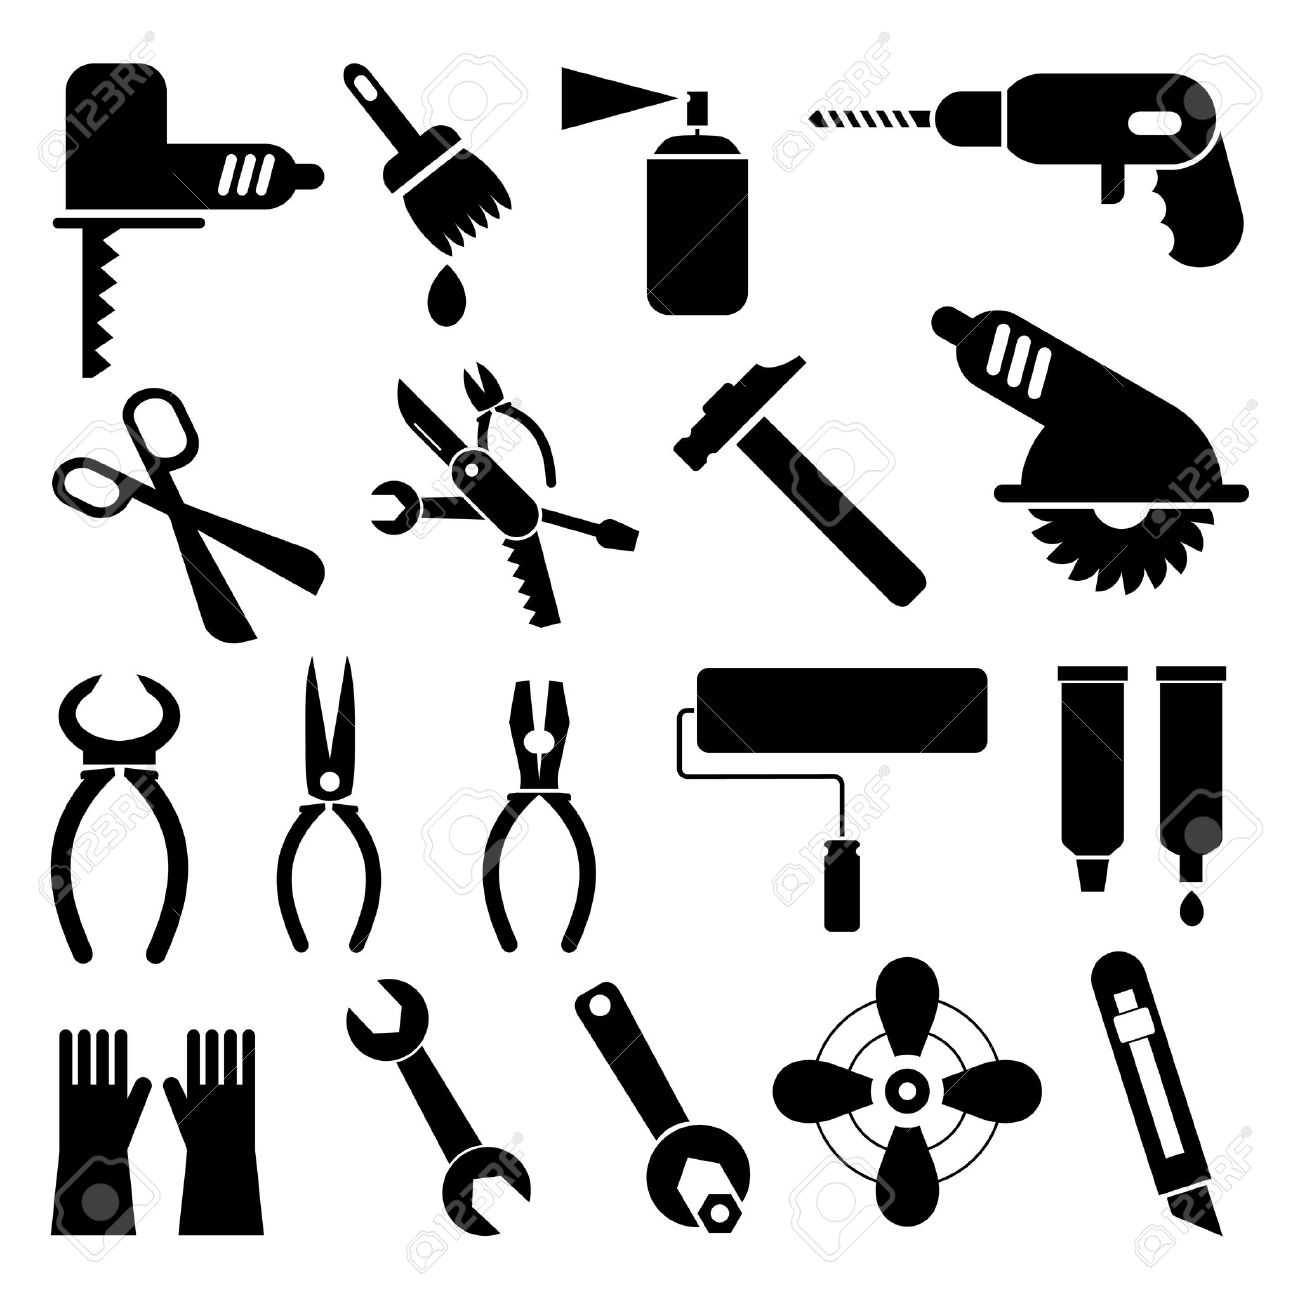 Construction Tools Royalty Free Cliparts, Vectors, And Stock ...